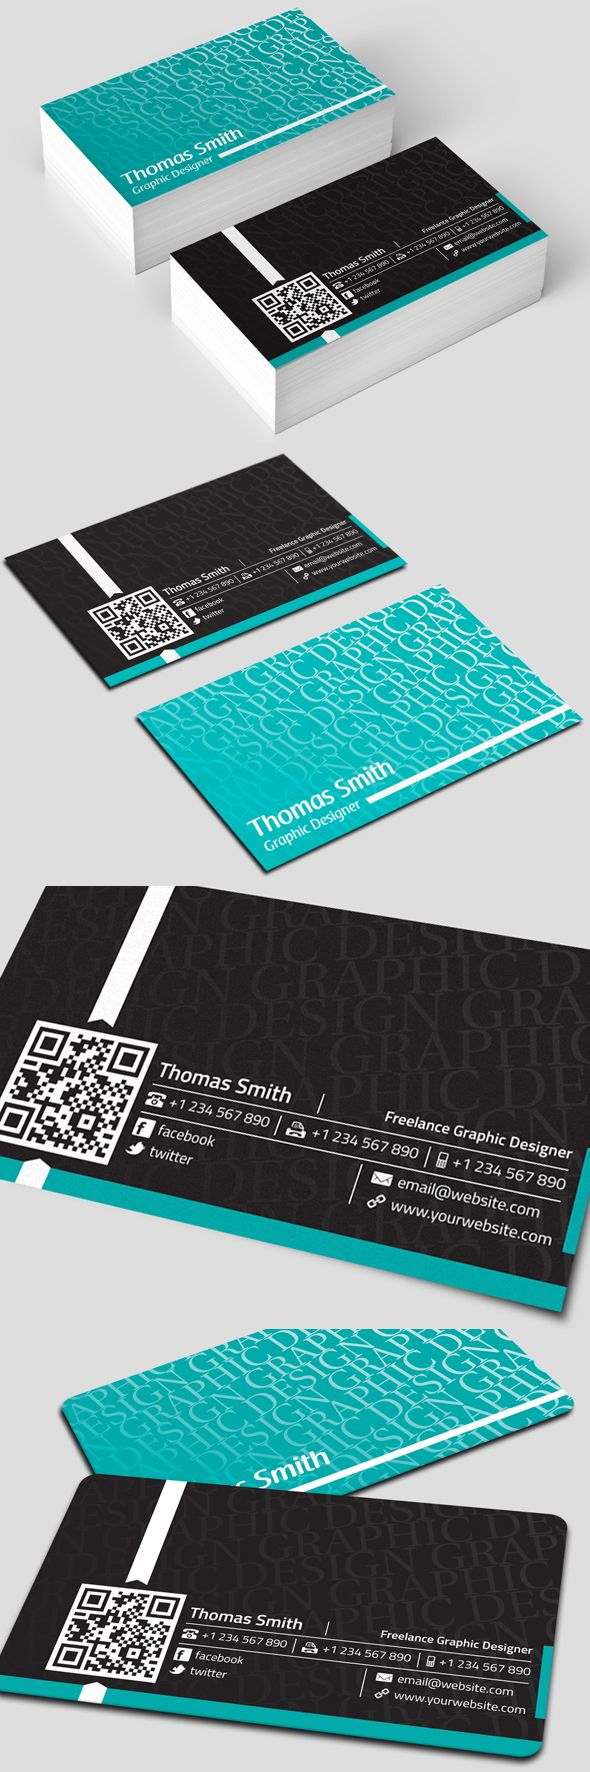 images about dise ntilde os creative personal business card